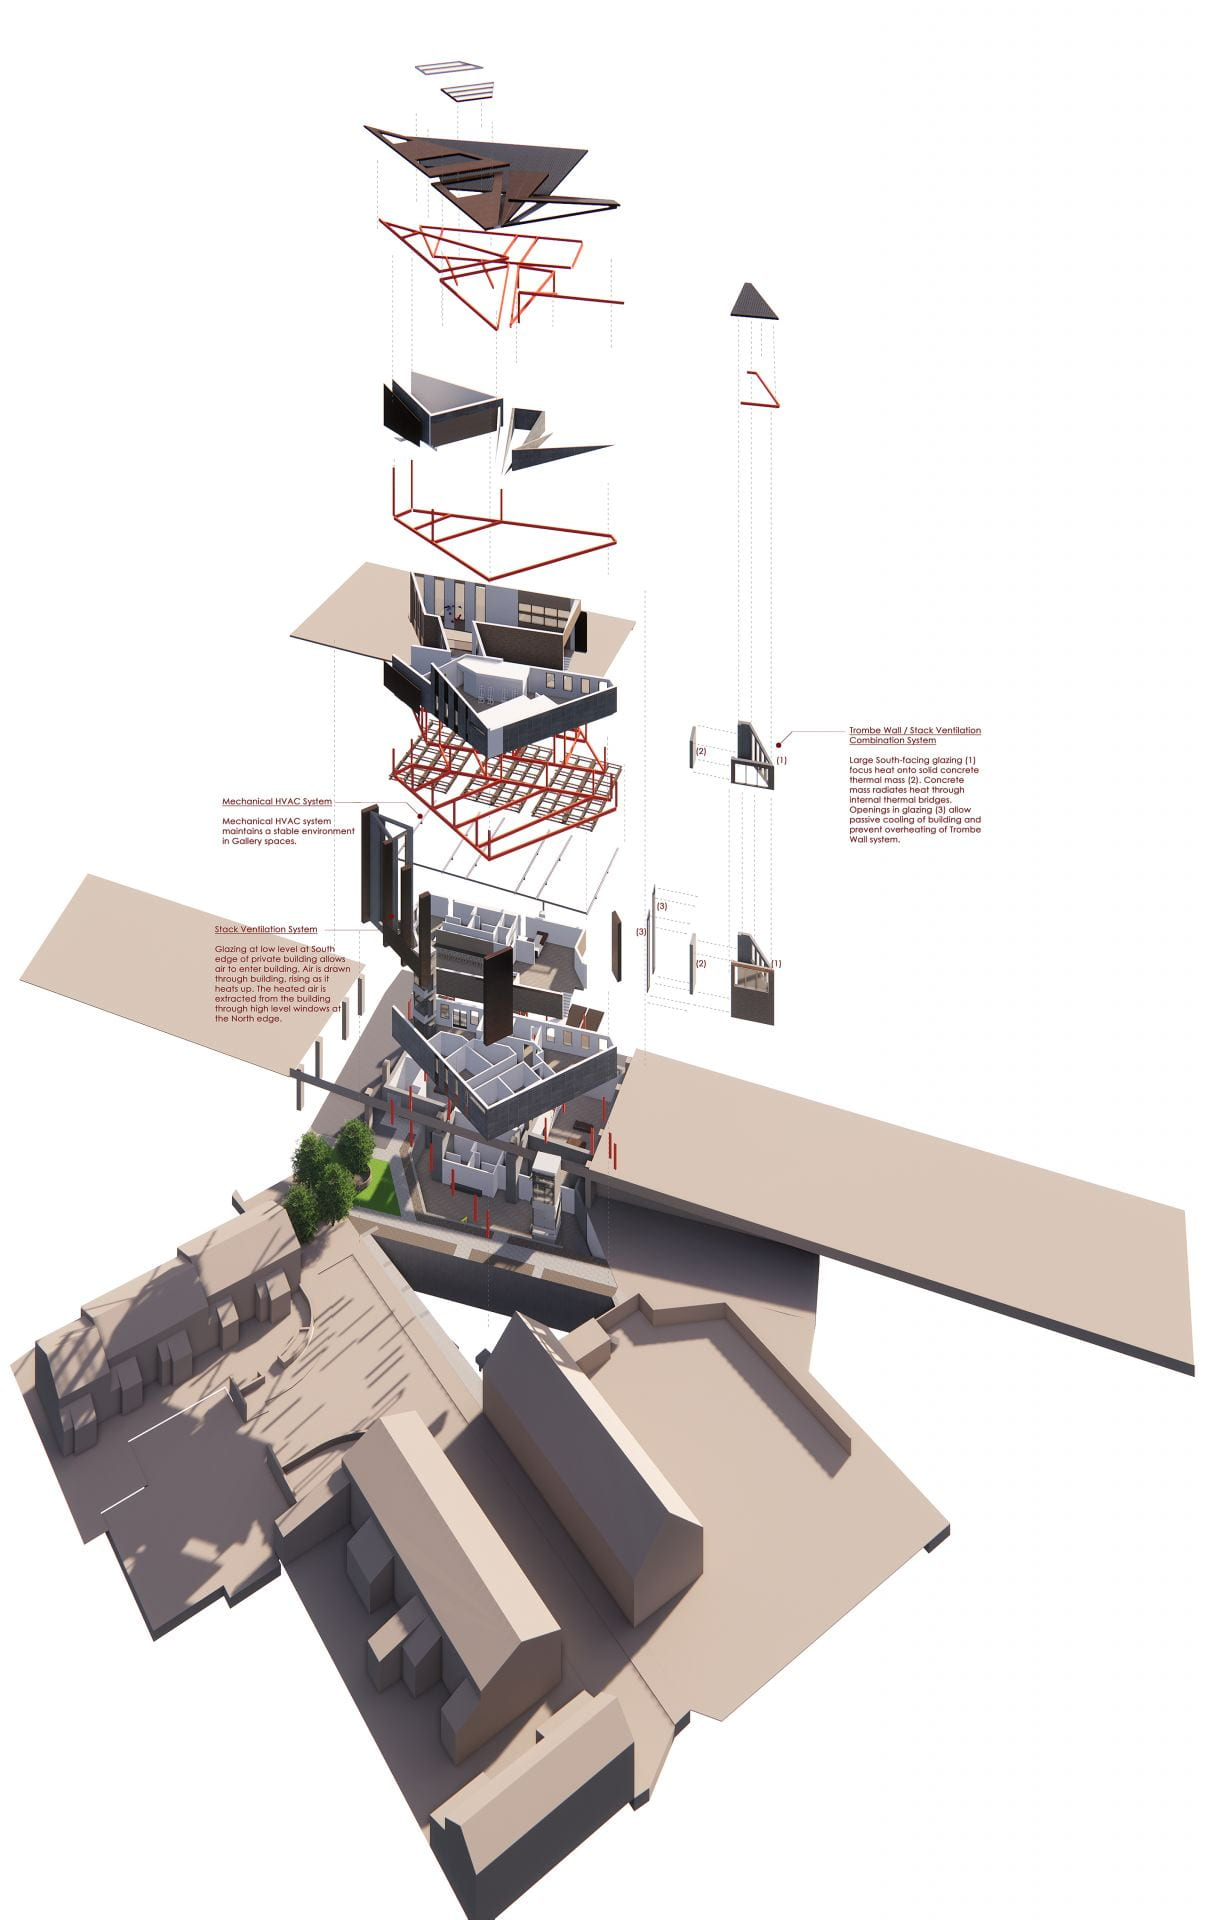 Exploded axonometric depicting how the building will be constructed